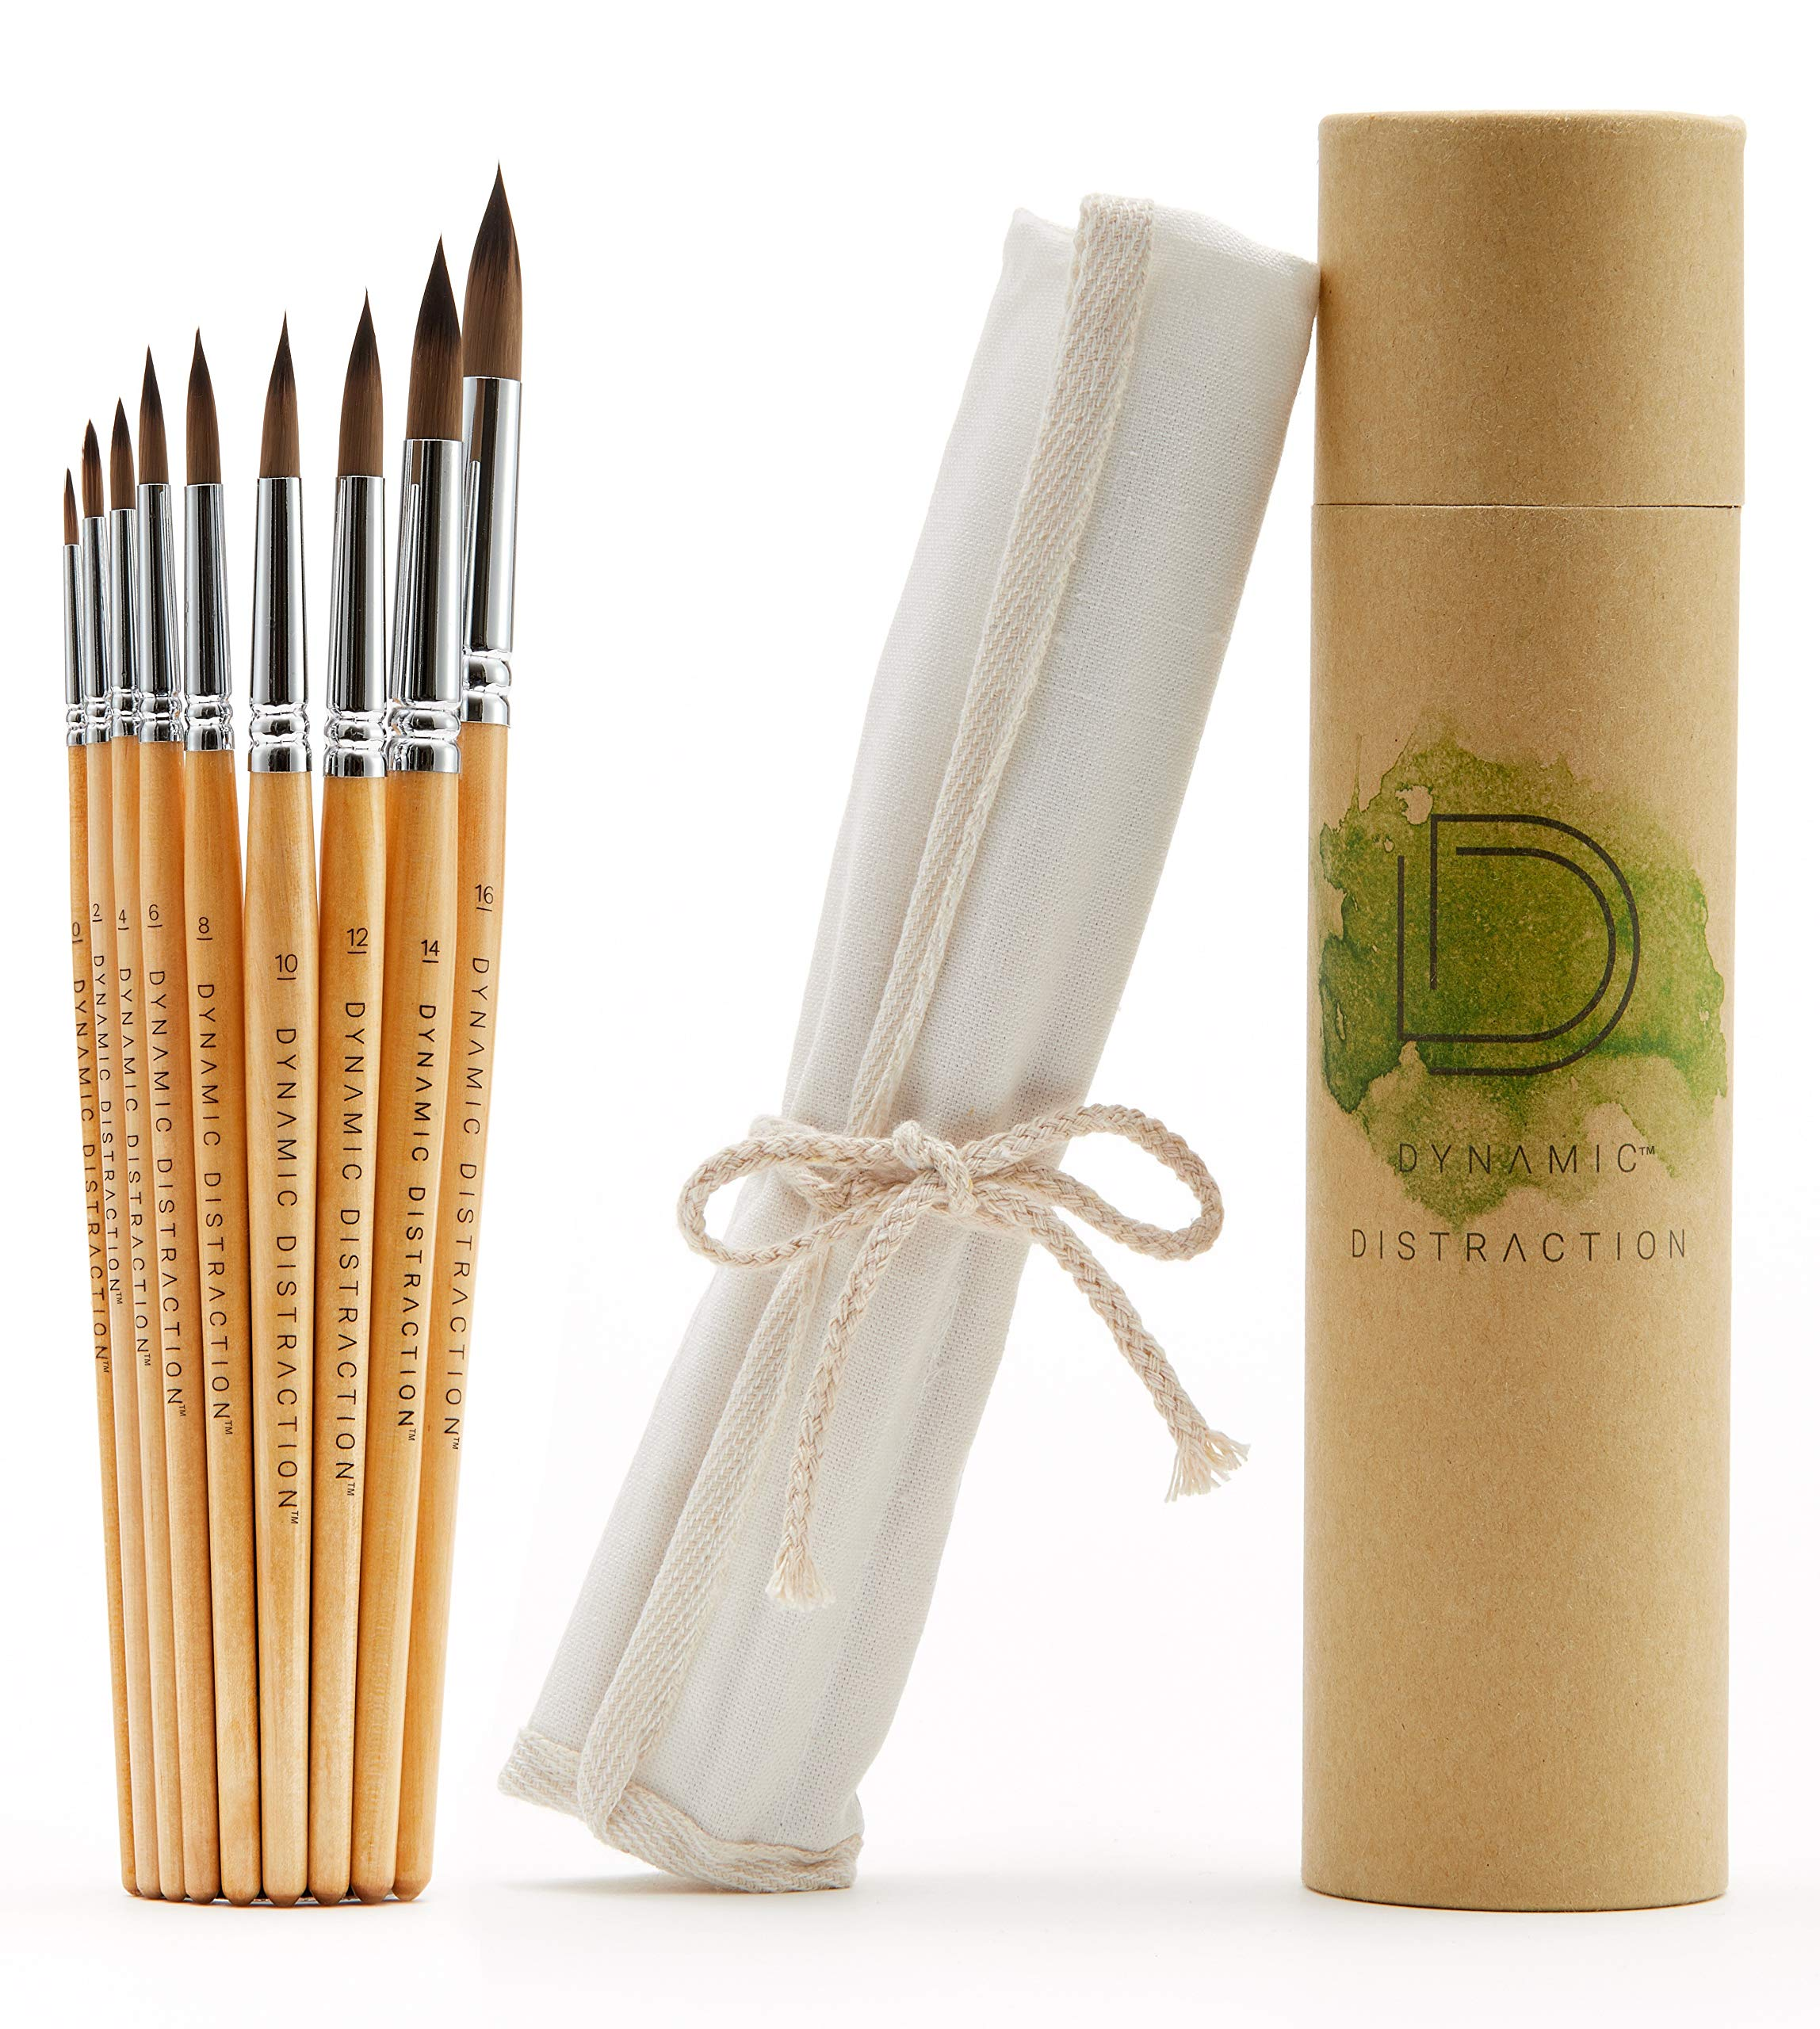 Dynamic Distraction Watercolor Brushes for Painting - Round Water Color Paint Brush Set of 9 - Comfortable Handle Size - Professional Artist Quality - Perfect for Watercolor, Acrylic and Gouache